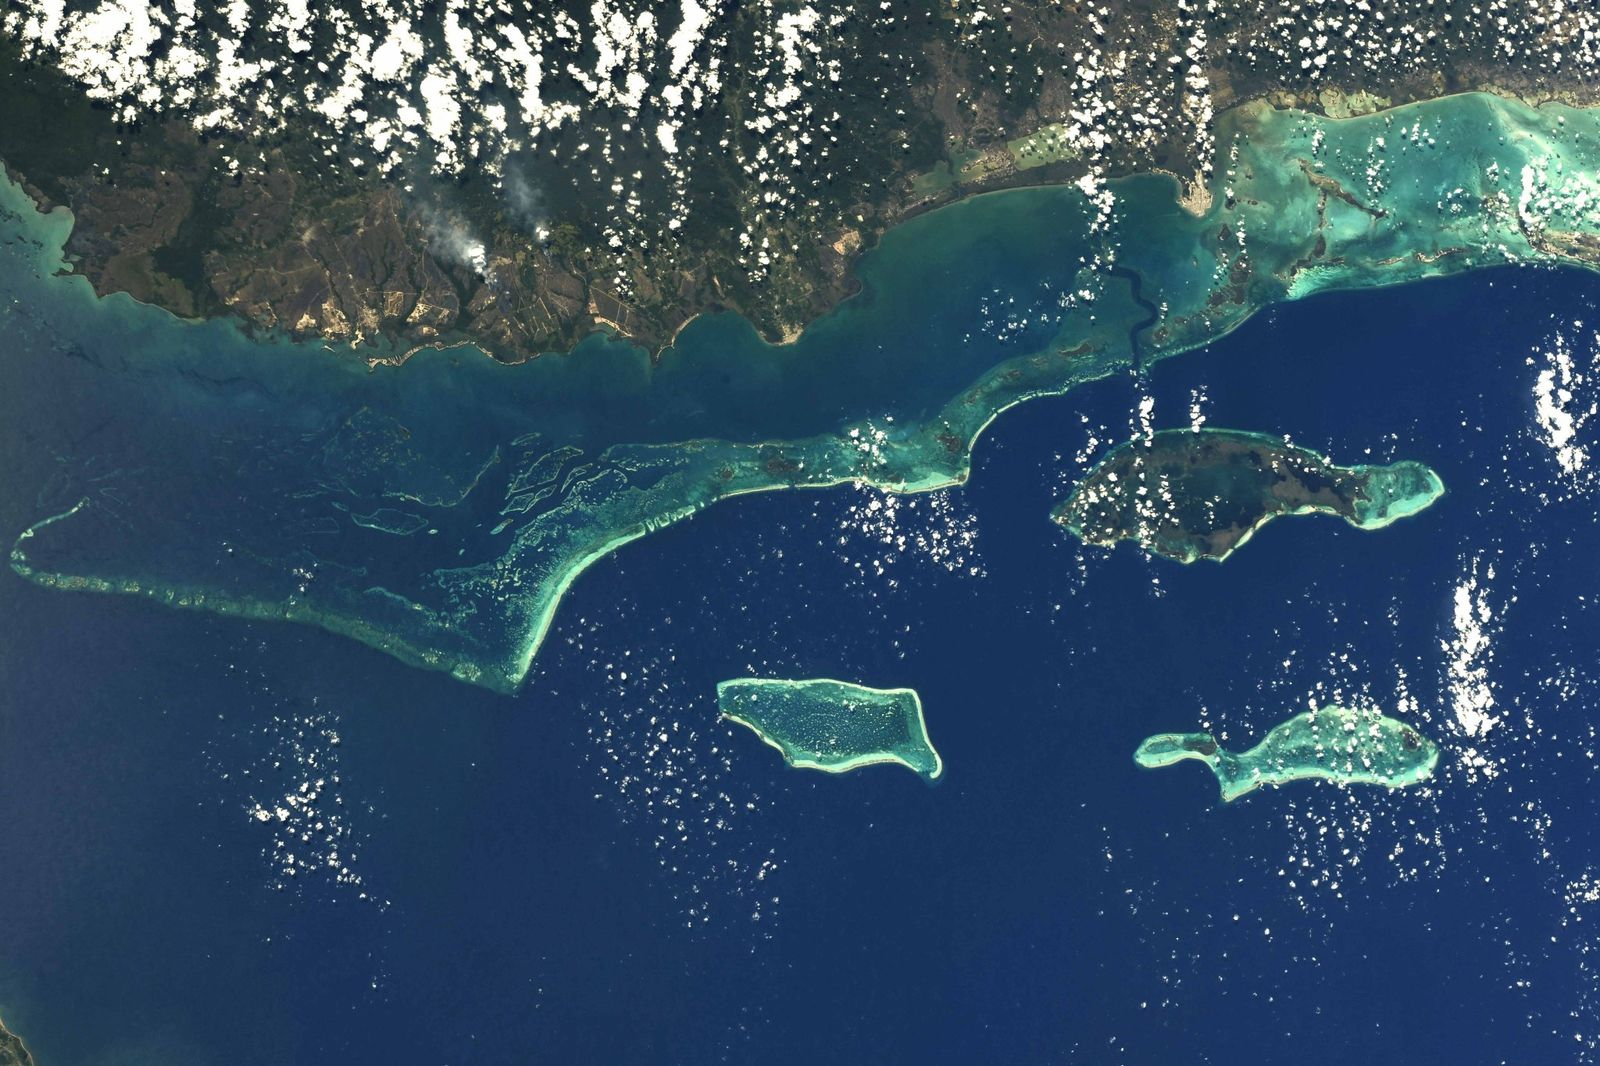 Charles Darwin called it ?the most remarkable reef in the West Indies?. I am inclined to agree. #Belize Barrier Reef (Photo & Caption Ricky Arnold, NASA)